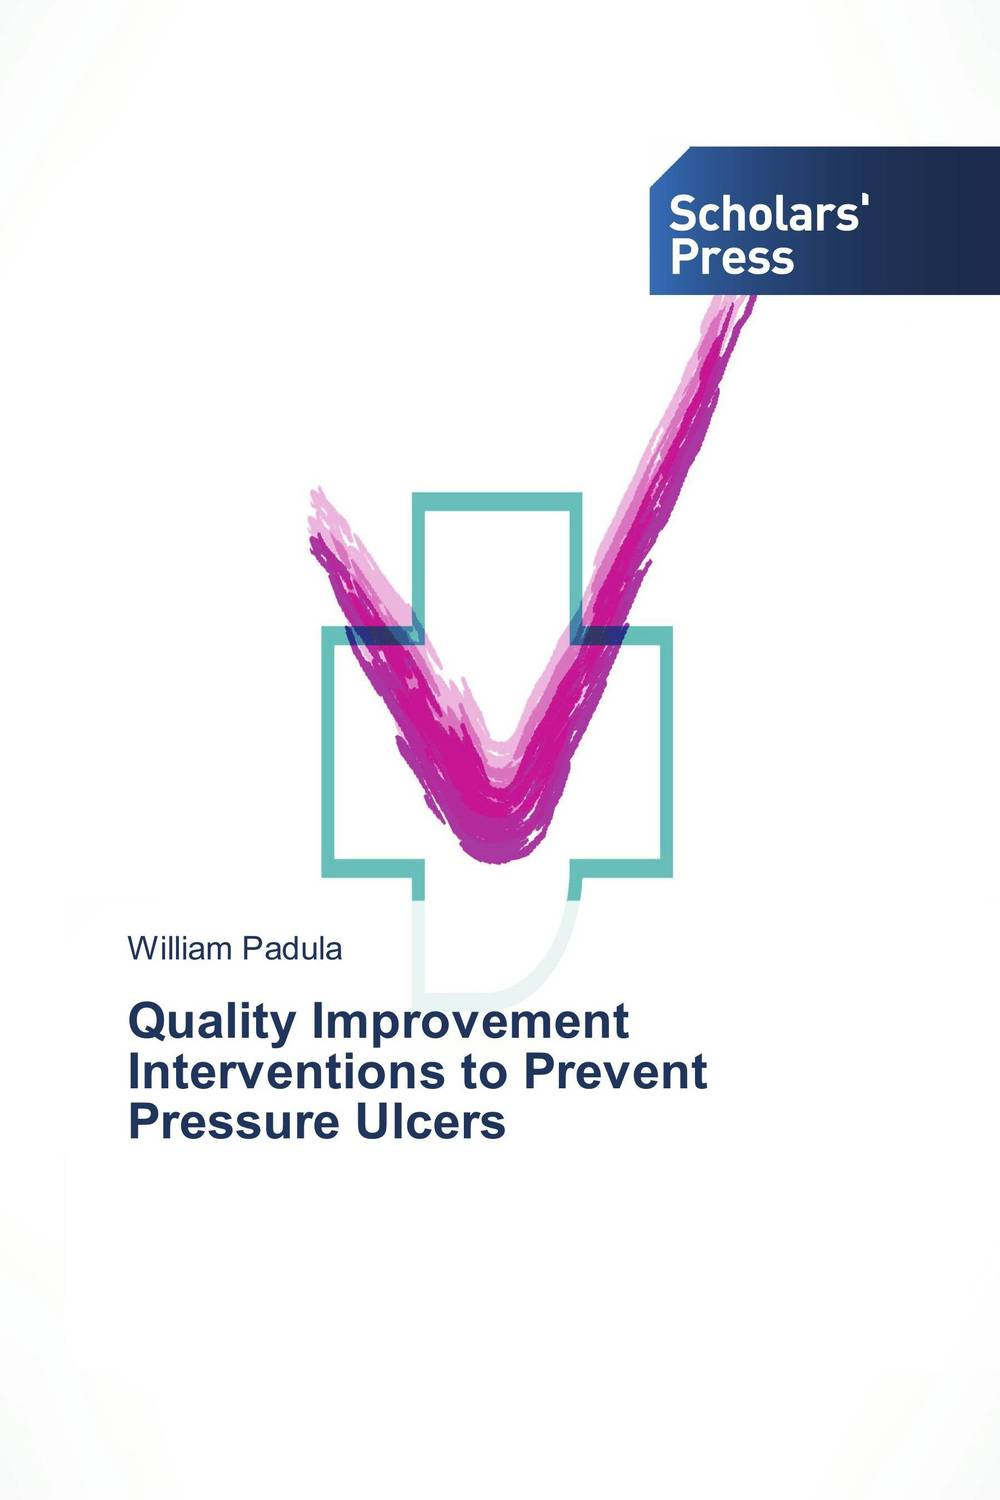 Quality Improvement Interventions to Prevent Pressure Ulcers effective interventions for managing overweight and obesity in adults